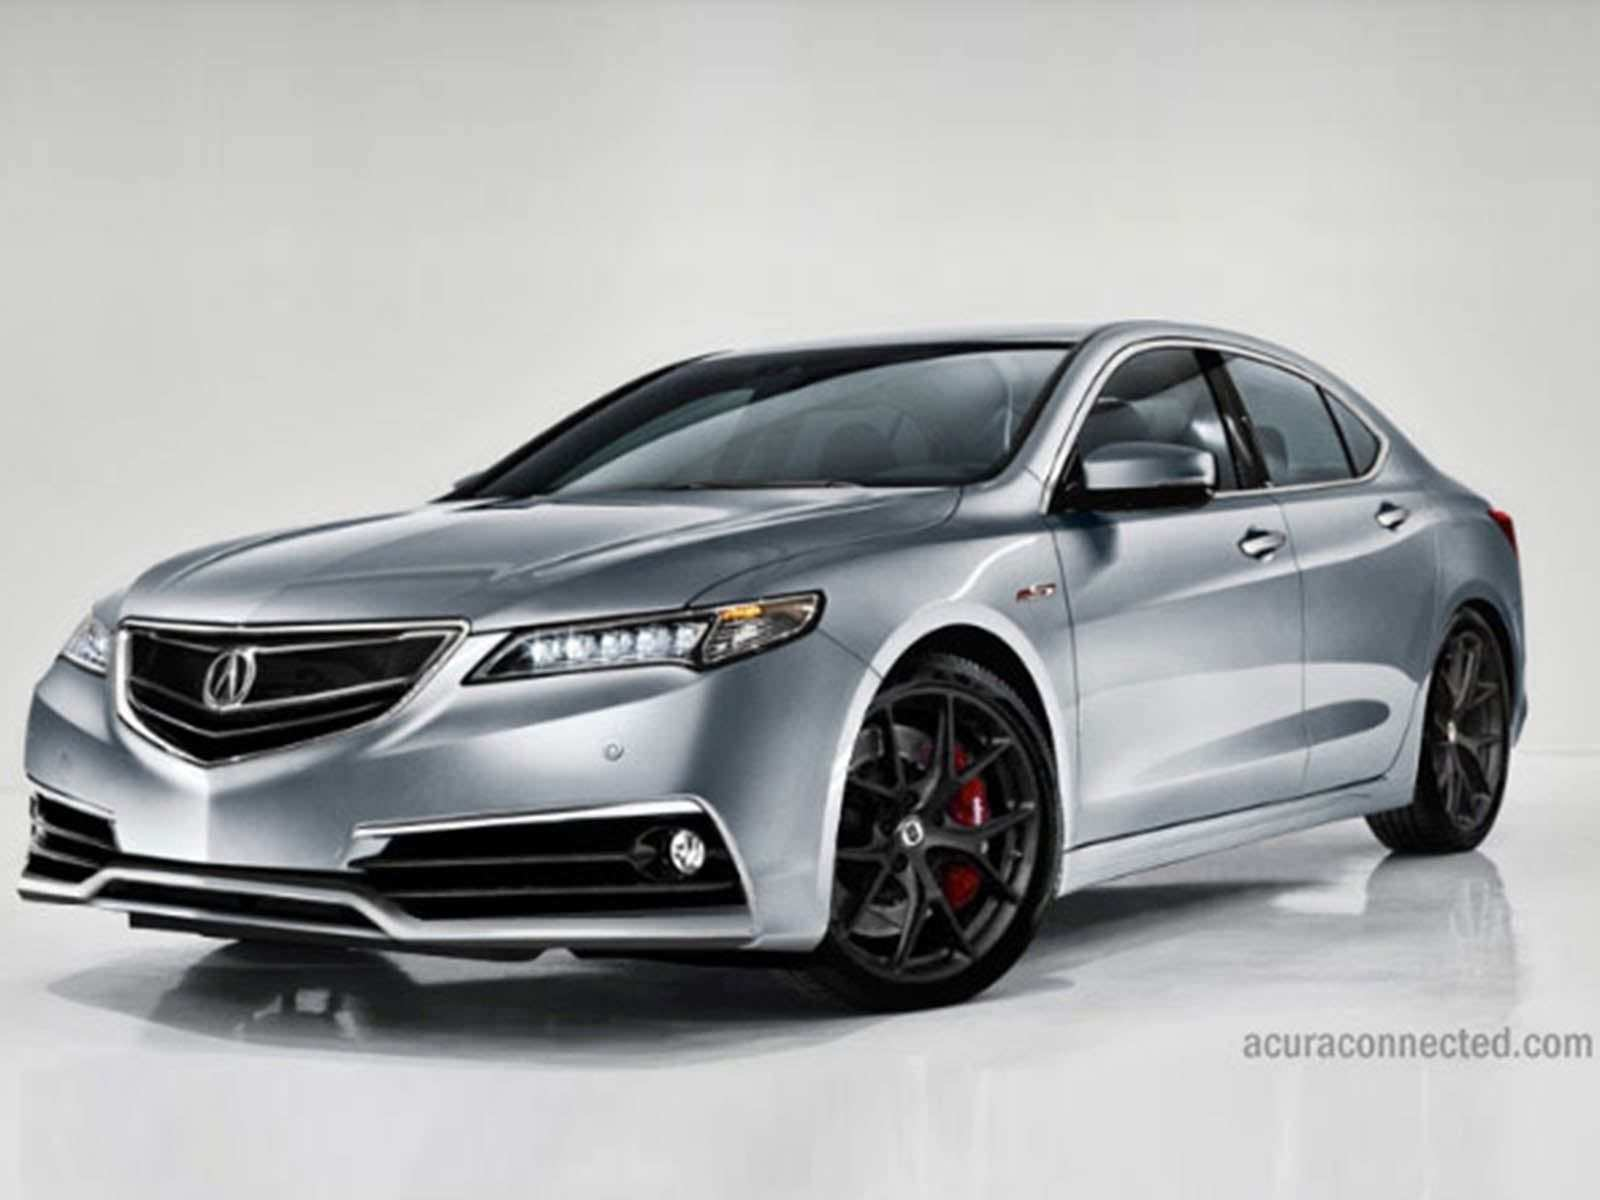 80 Best Review 2019 Acura Tl Price with 2019 Acura Tl